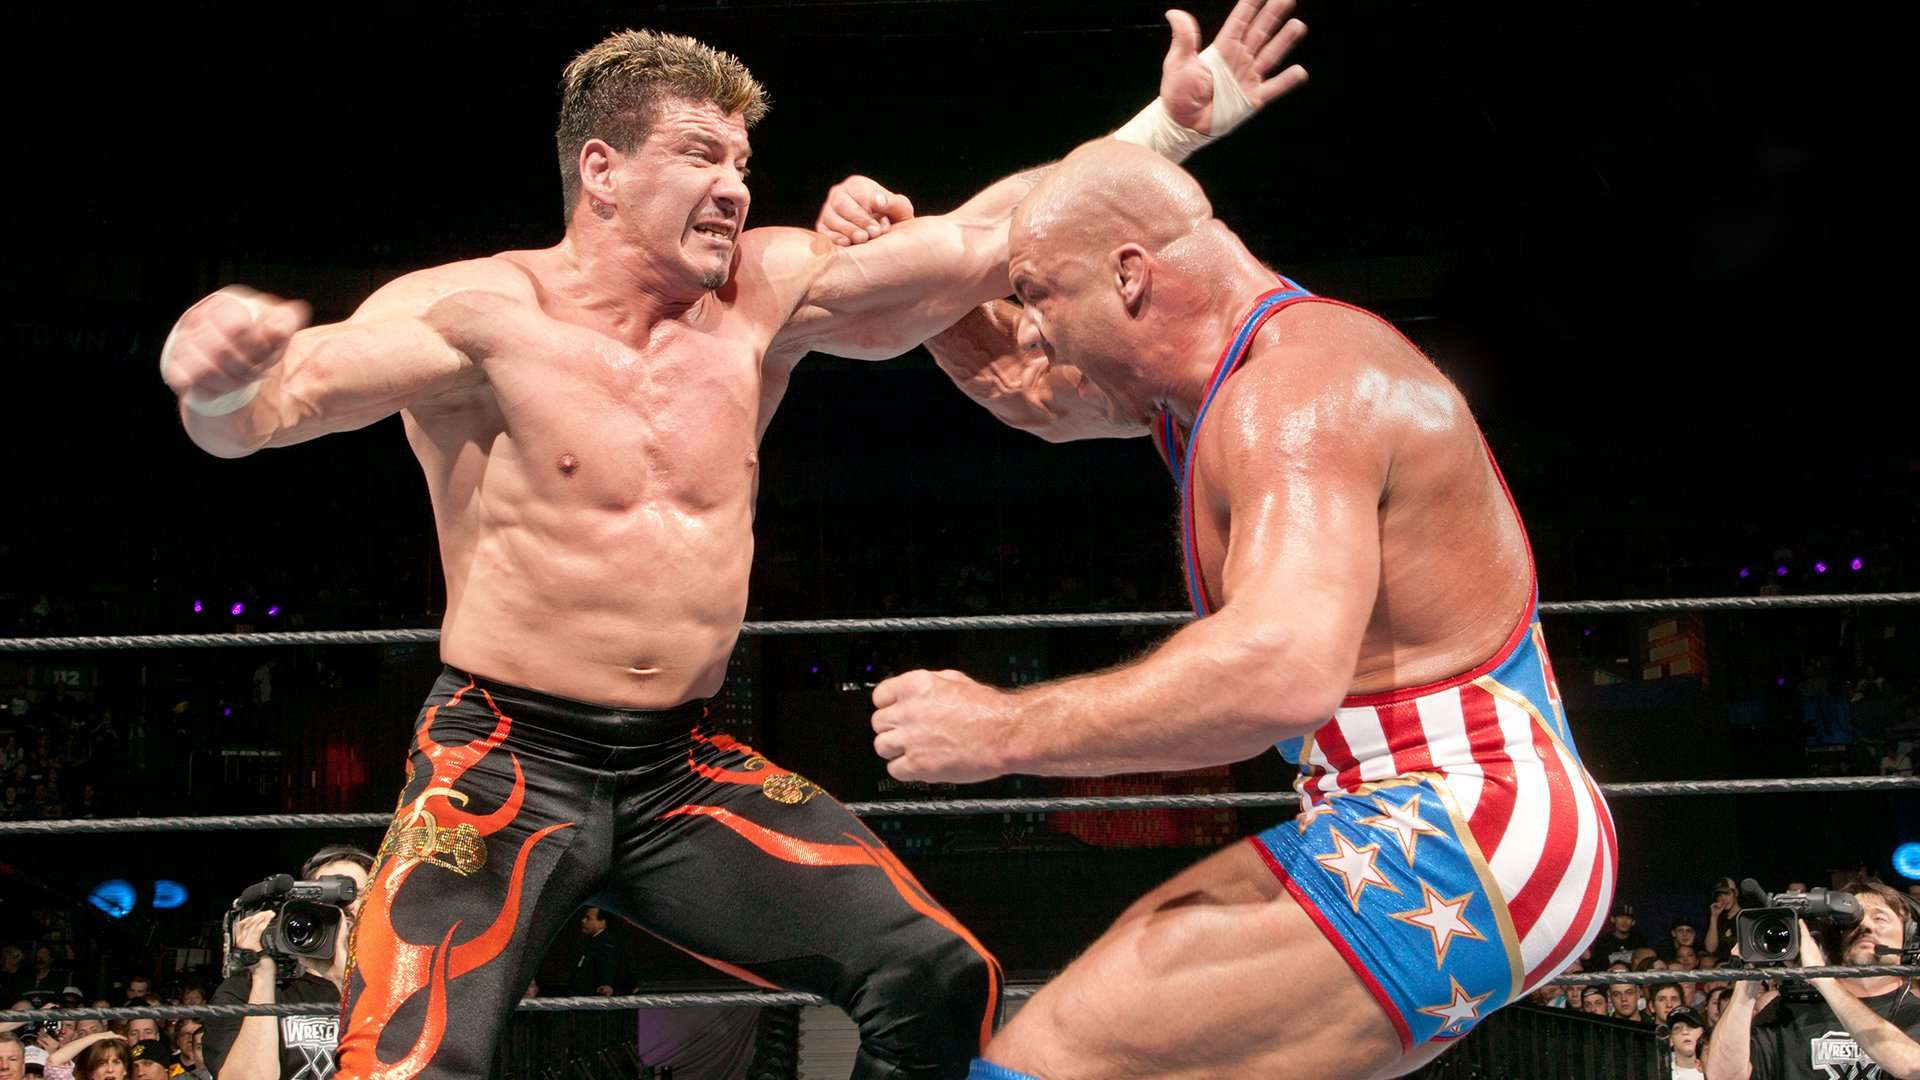 Eddie Guerrero and Kurt Angle, shown here in their 2004 WWE Championship match at WrestleMania XX, were like brothers outside of the ring. And like with brothers, things get a bit physical from time to time and in one instance backstage, the two of them got into it for real!